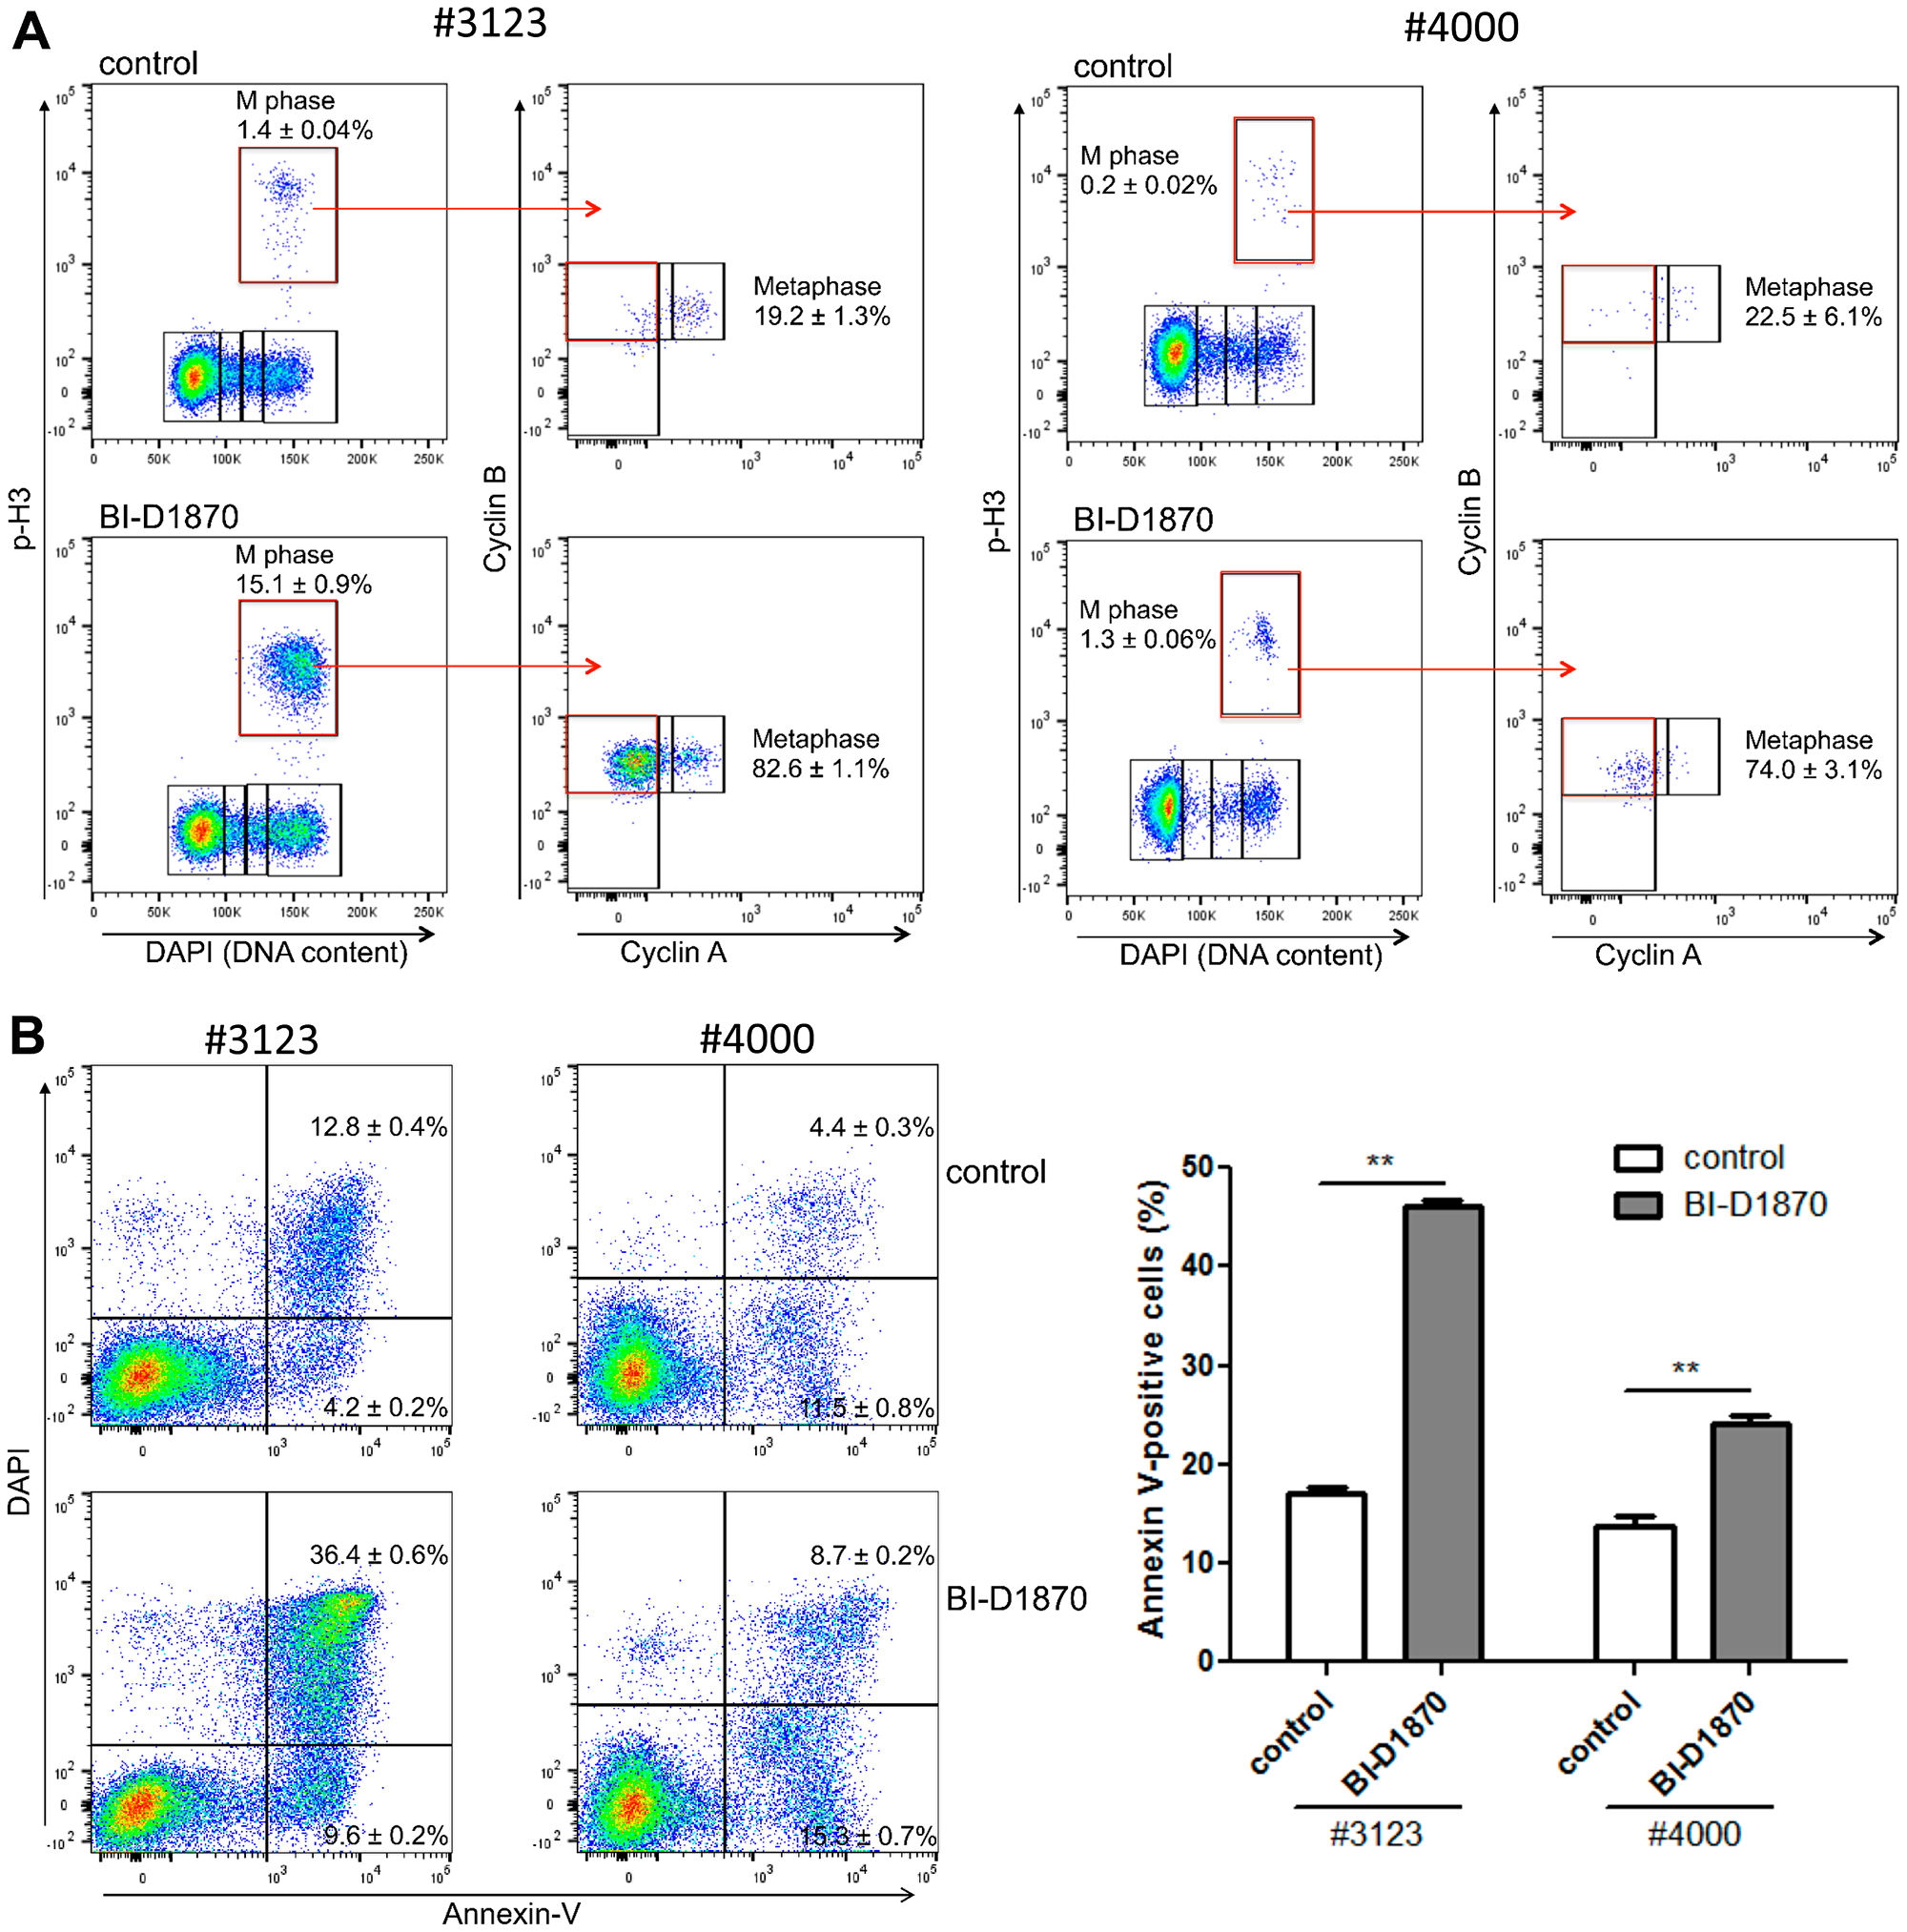 BI-D1870 treatment induces metaphase arrest and apoptosis in primary patient AML cells.